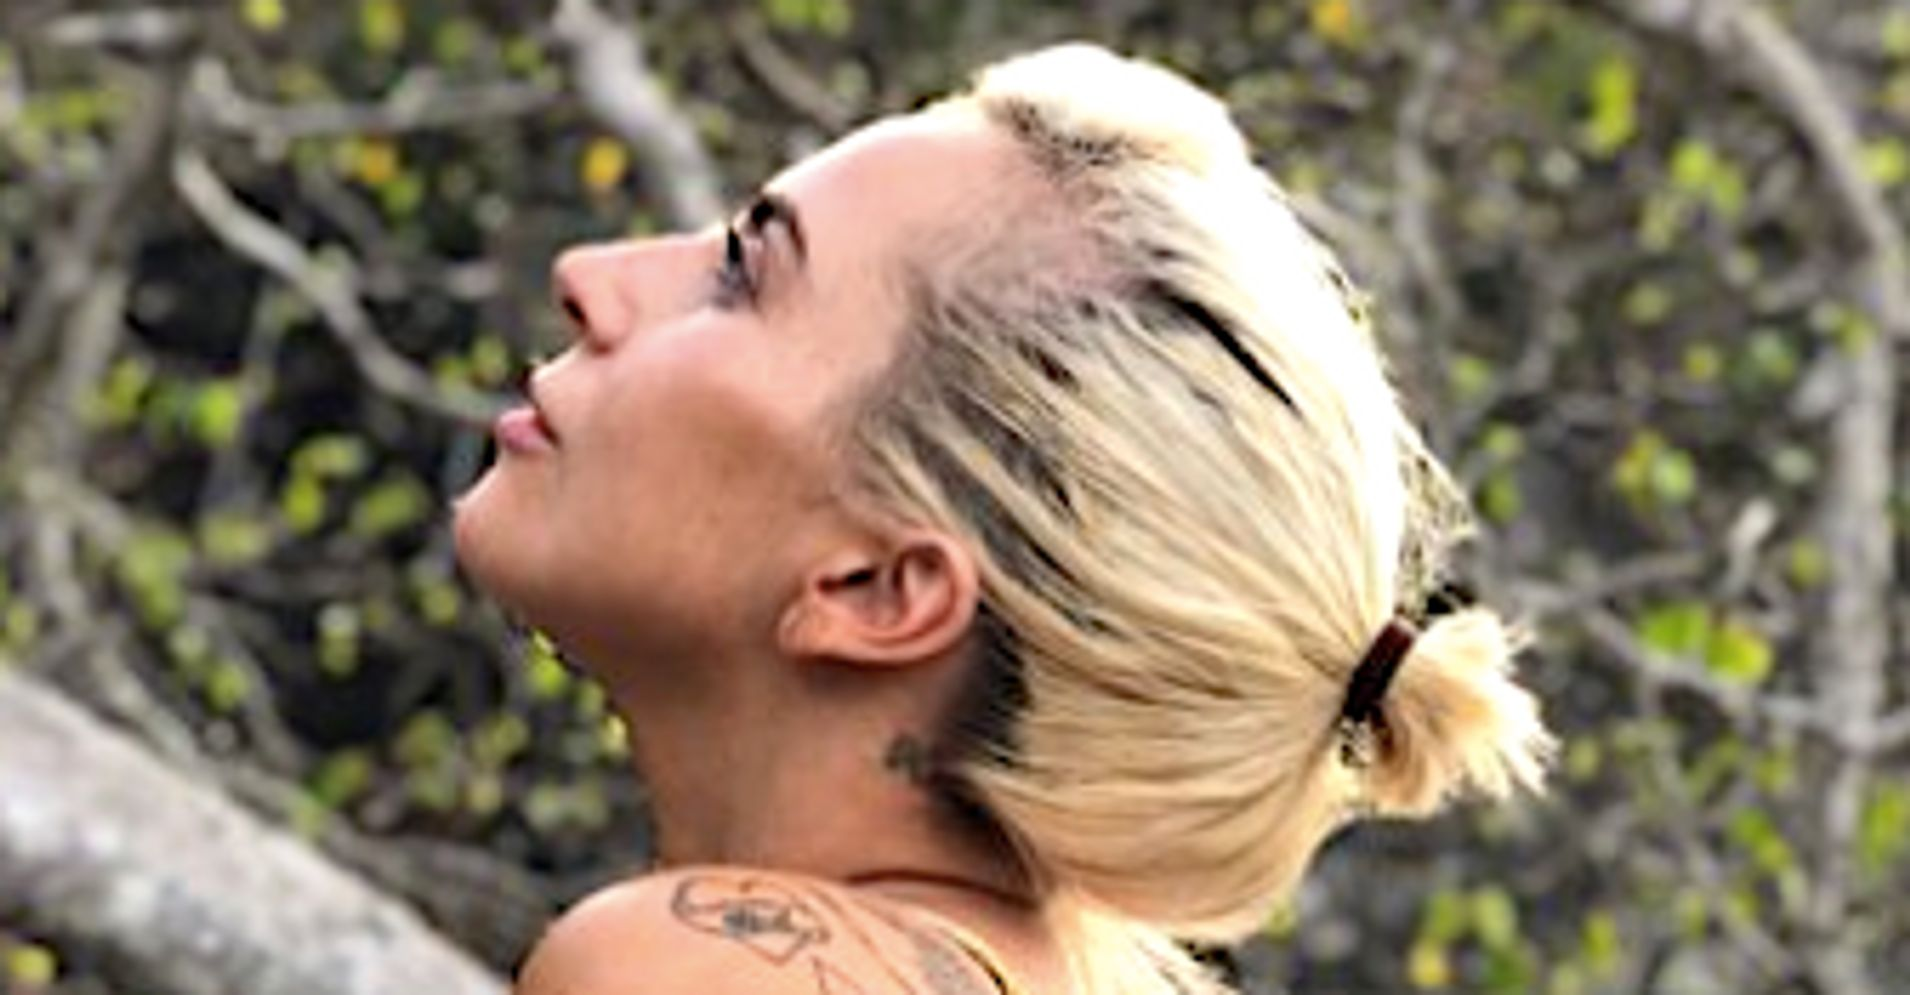 Lady Gaga's New Bikini Photo Shows Her Looking Up For The New Year